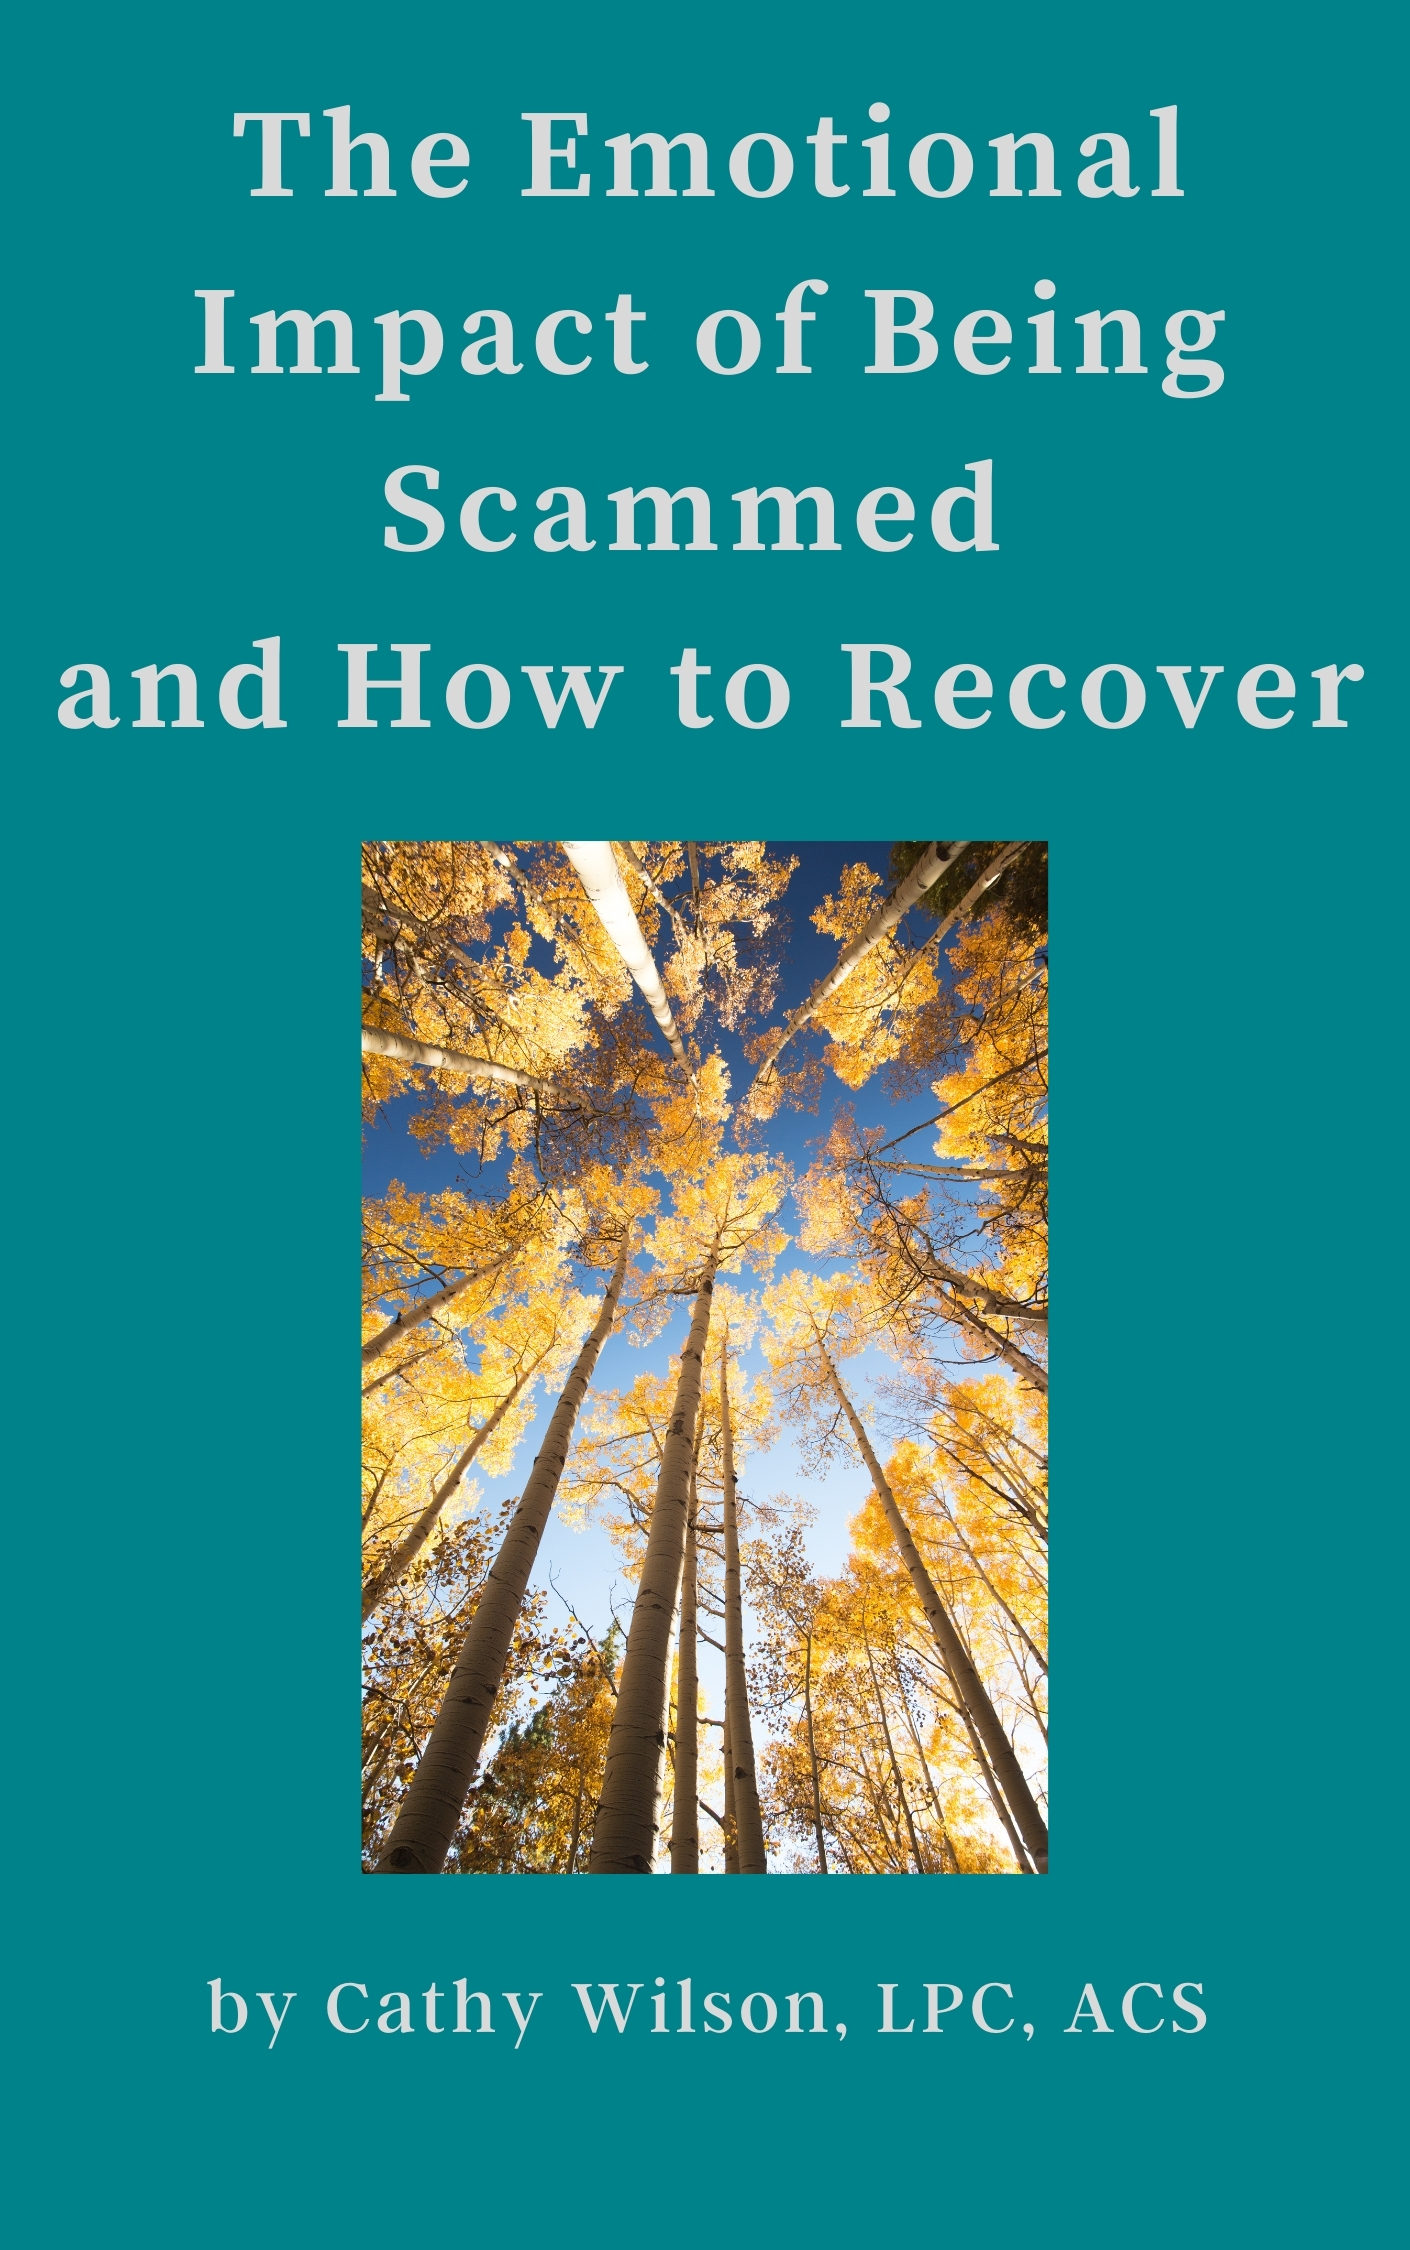 book about recovering from being scammed